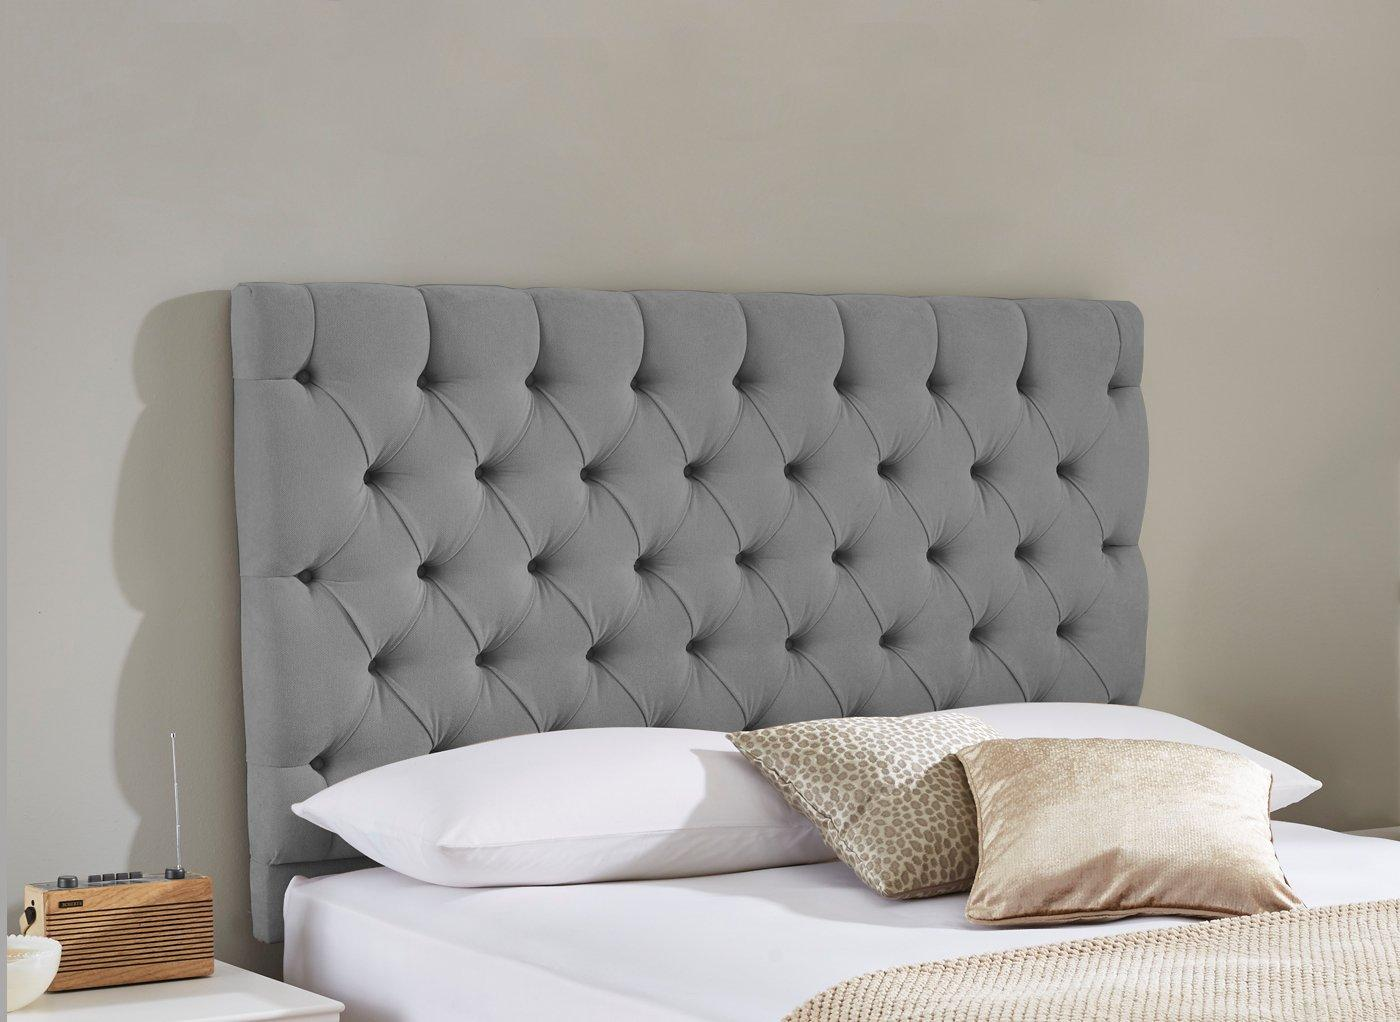 Harrogate Headboard 6'0 Super king GREY